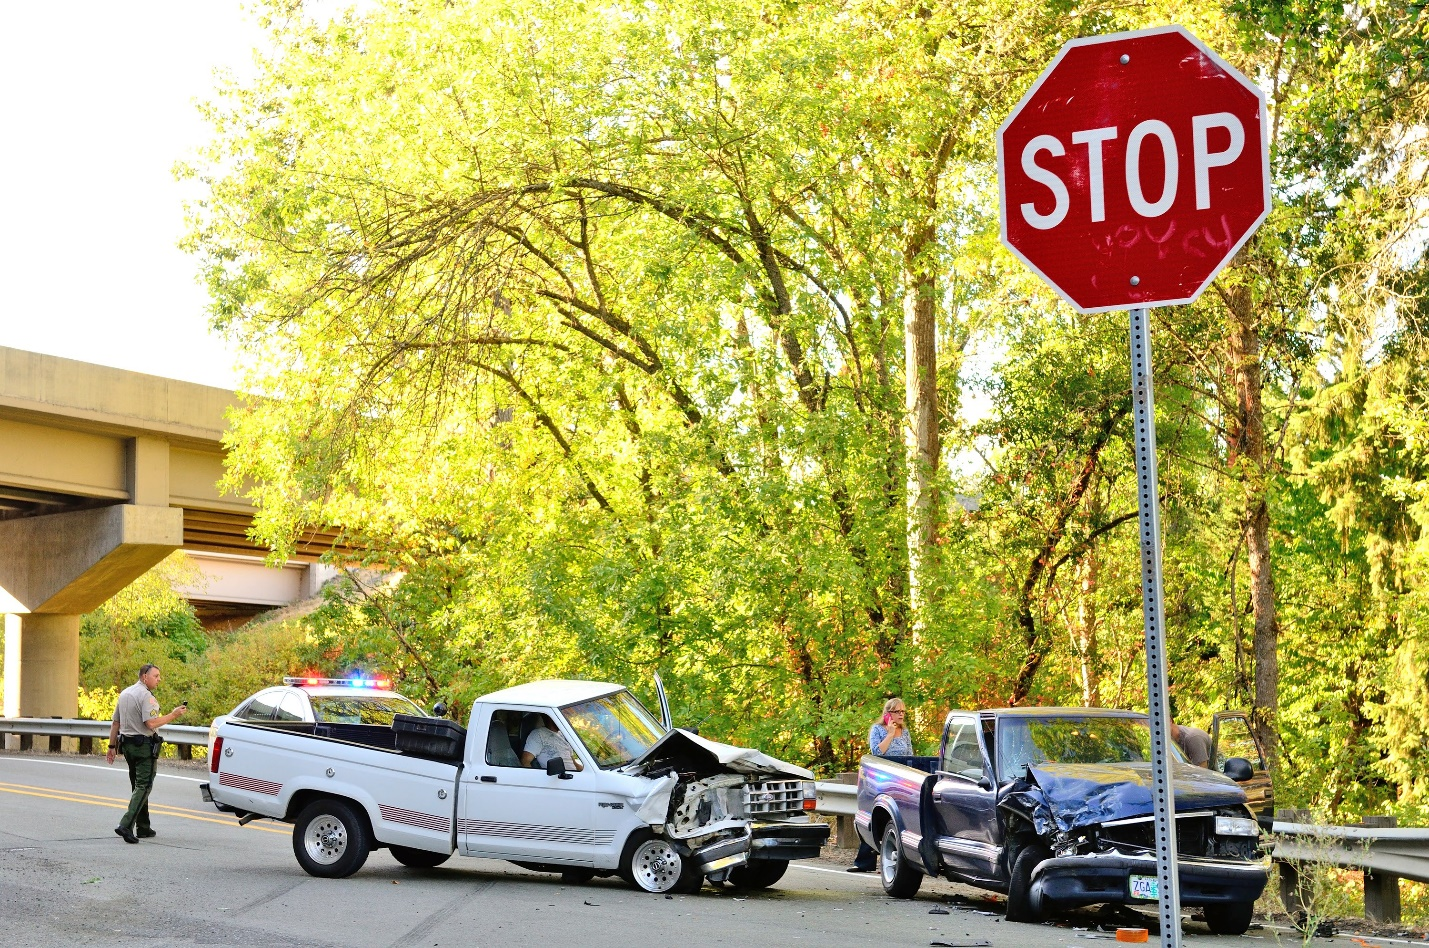 fayetteville ar car accident lawyer - The Most Common Types of Car Accidents in Arkansas